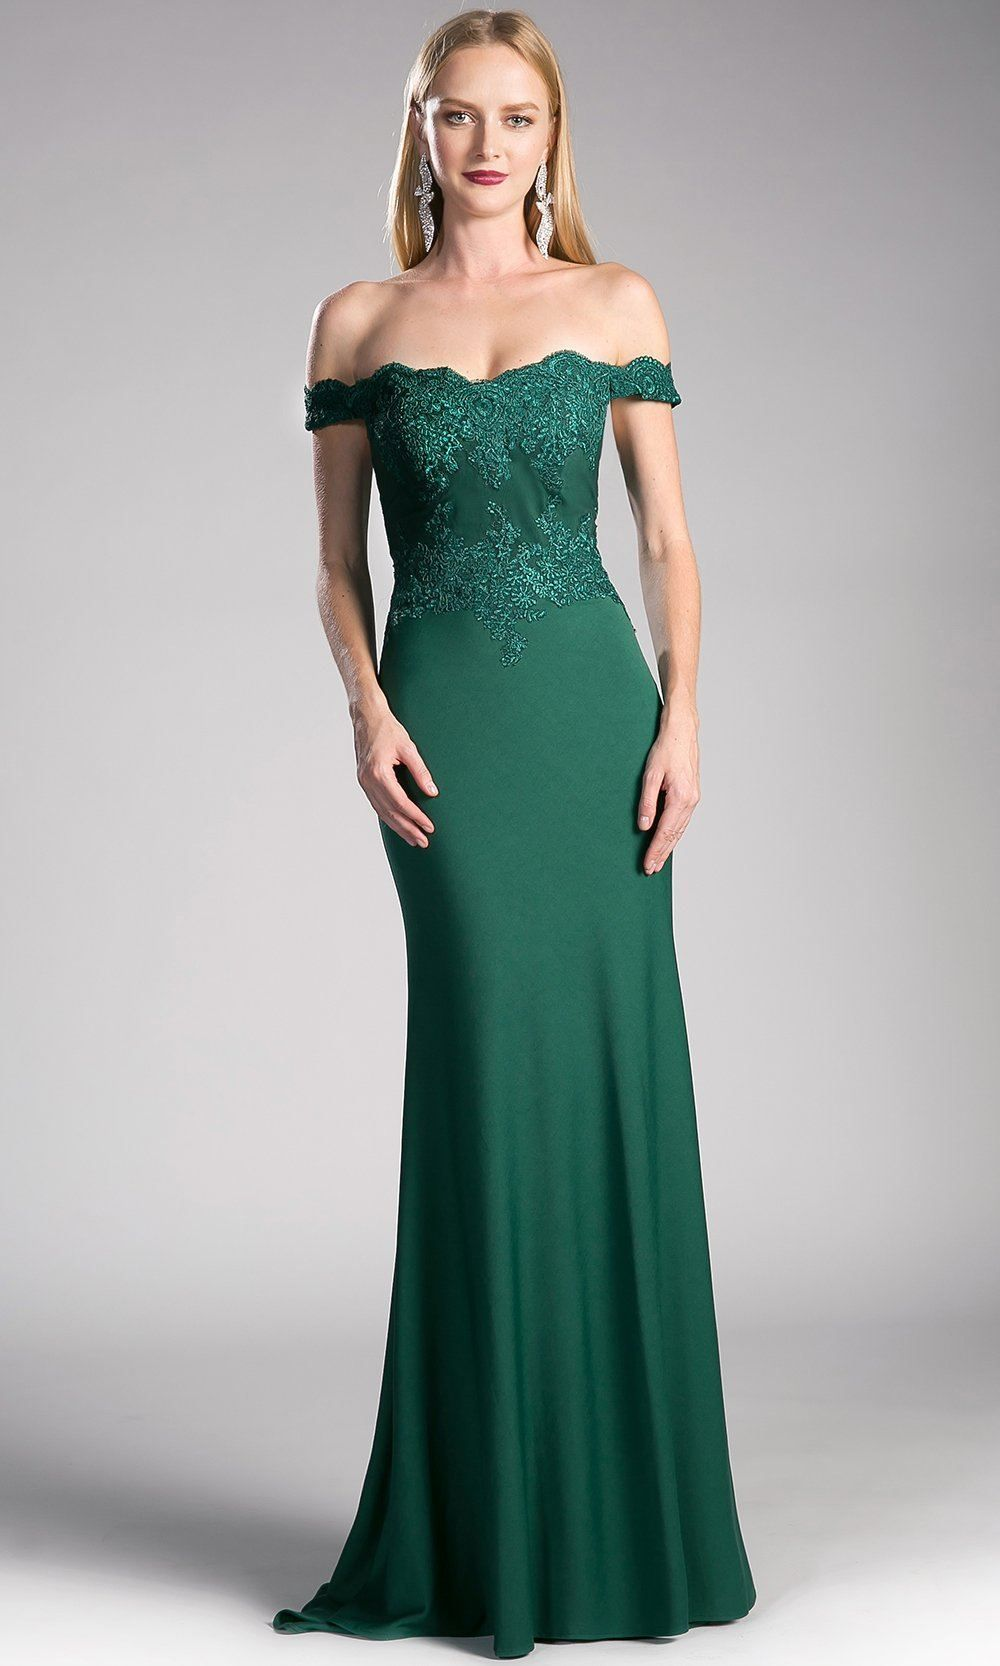 This dark green formal lace sleek and sexy gown is perfect for emerald off  shoulder bridesmaid dresses bba2668f5e27